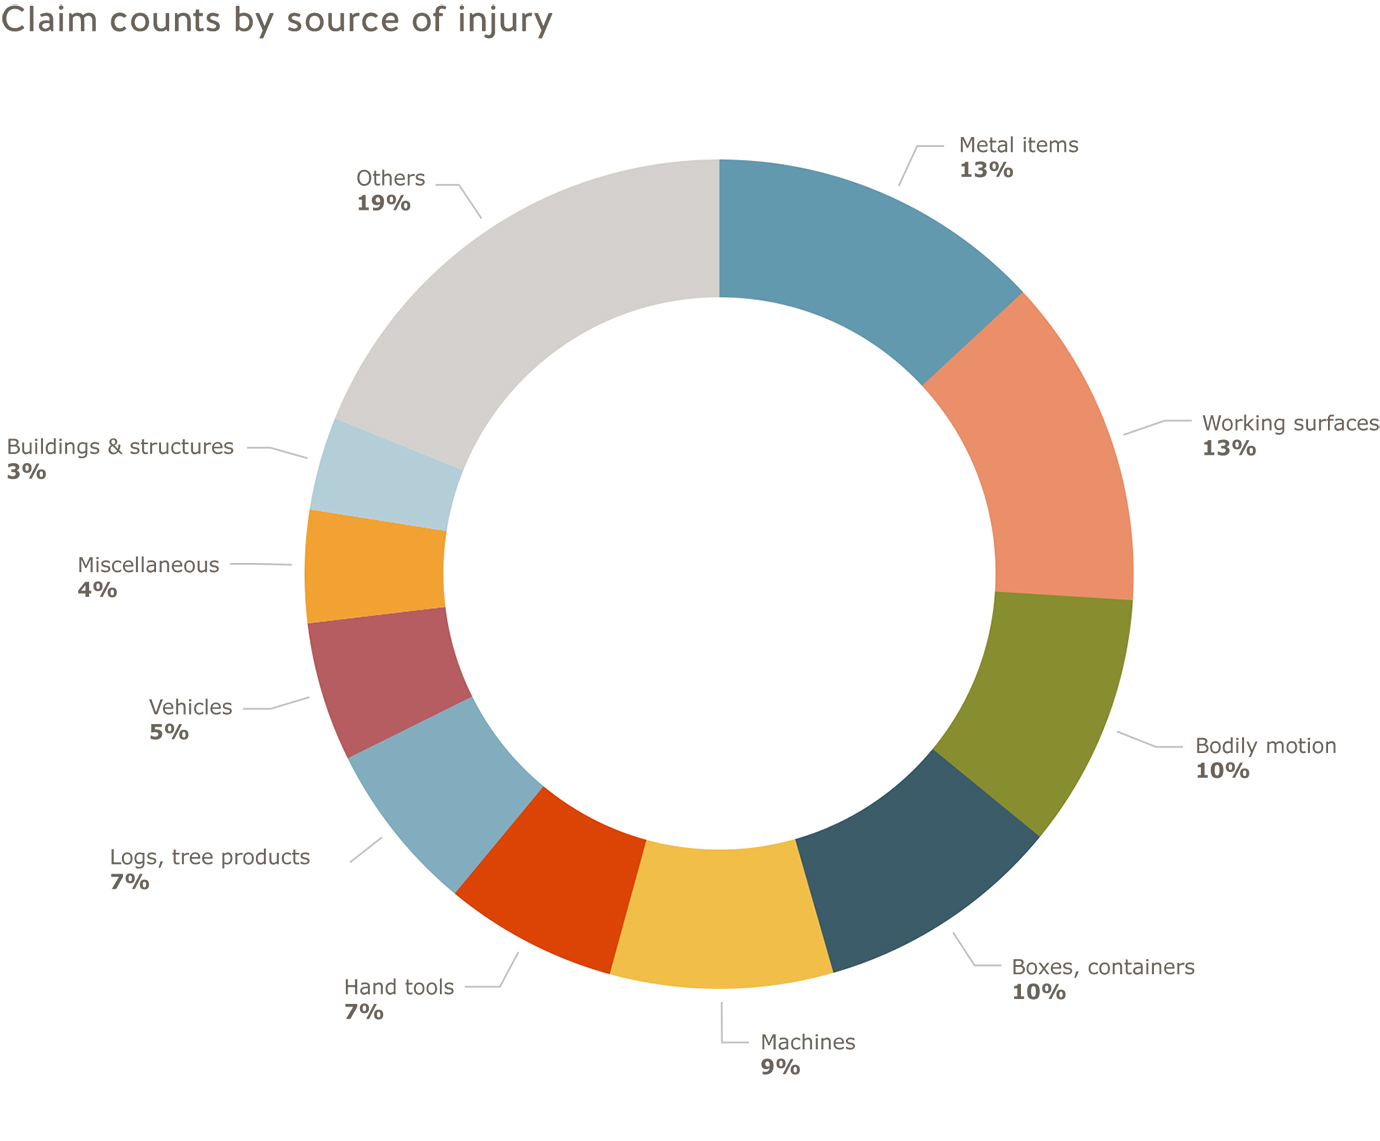 Manufacturing industry claim counts by source of injury: metal items=13%; working surfaces=13%; bodily motion=10%; boxes, containers=10%; machines=9%; hand tools=7%; logs,  tree products=7%; vehicles=5%; miscellaneous=4%; buildings and structures=3%; others=19%